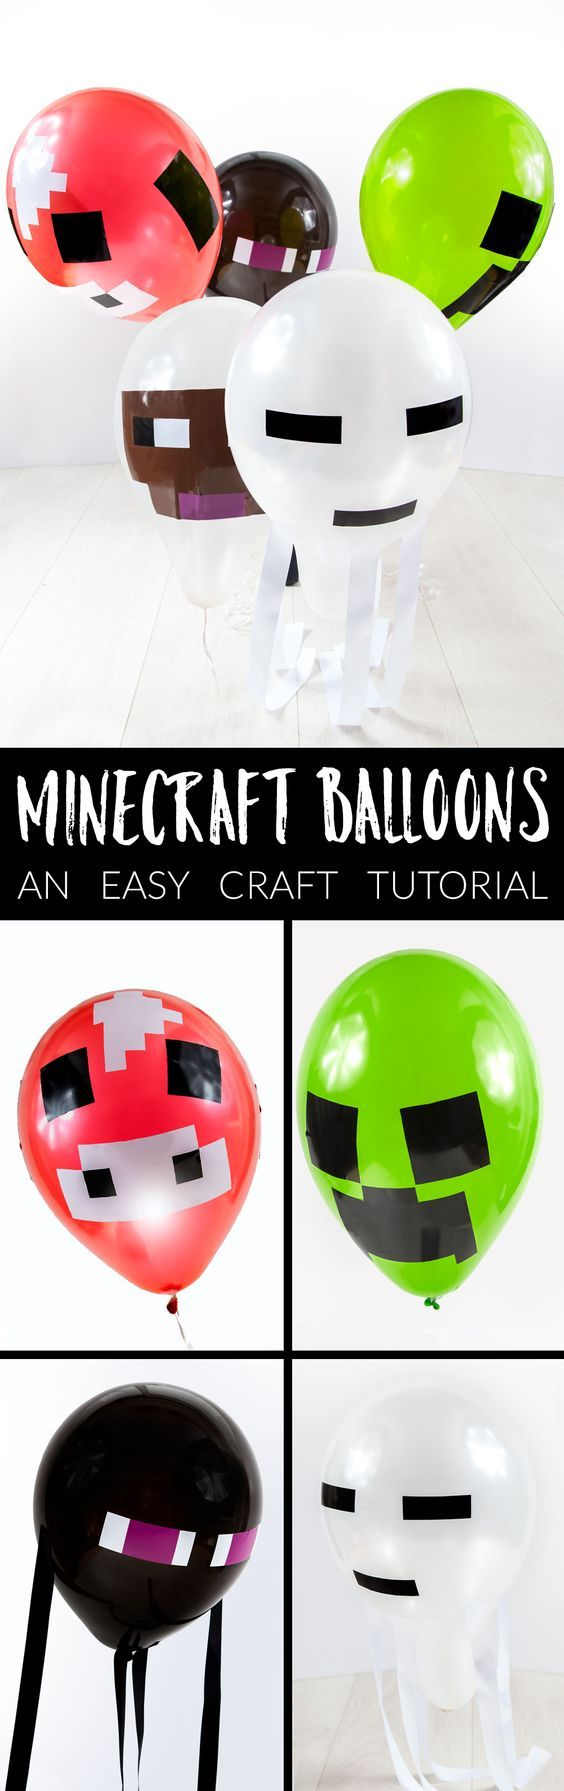 Fairly Simple and Fun! Minecraft Balloon Craft Tutorial! Liven up any classroom or kids' party!